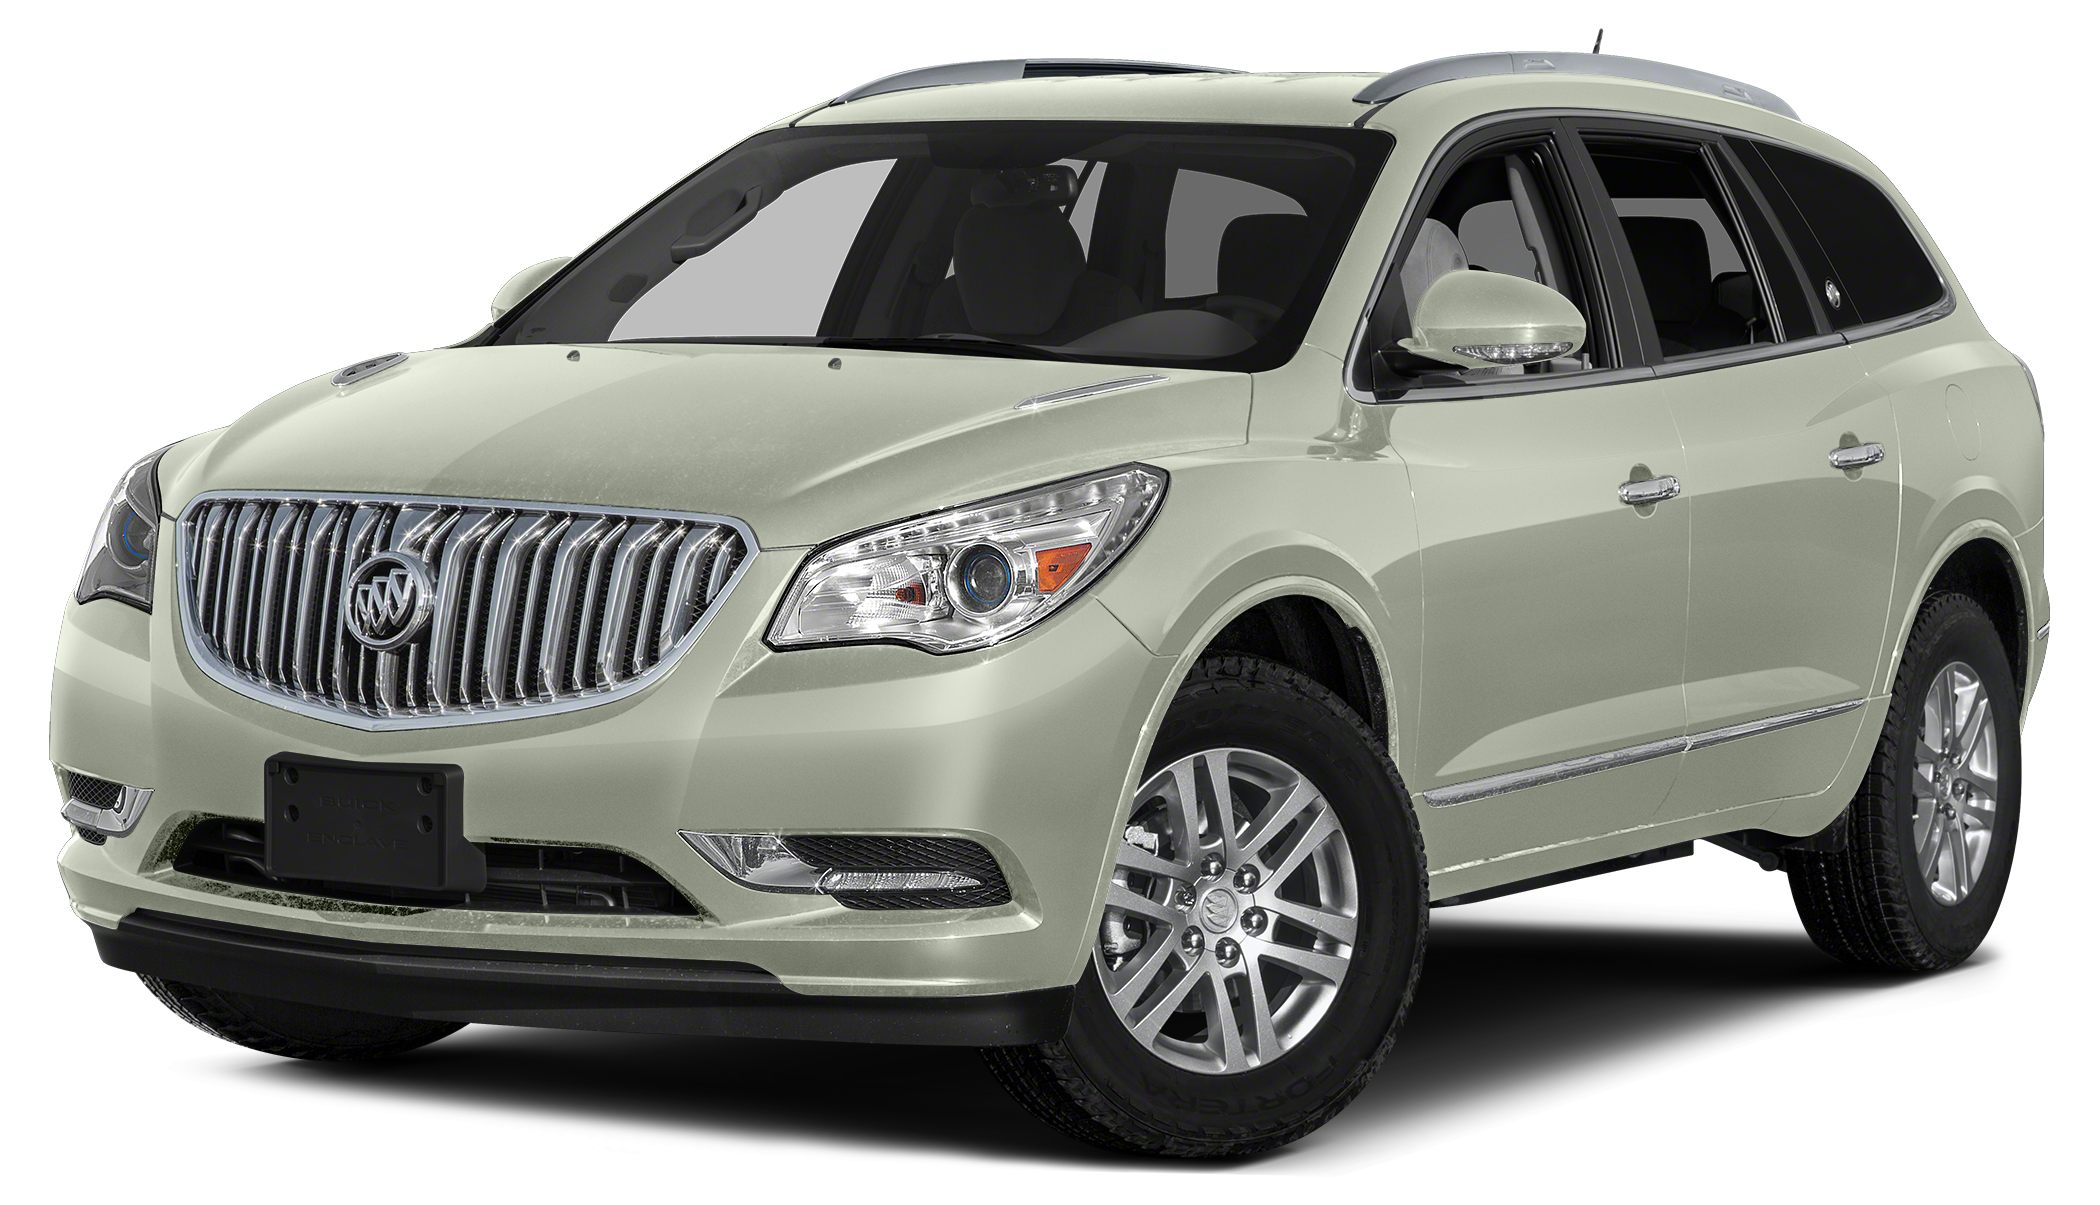 2016 Buick Enclave Leather You cant go wrong with this amazing 2016 Buick Enclave Leather which o